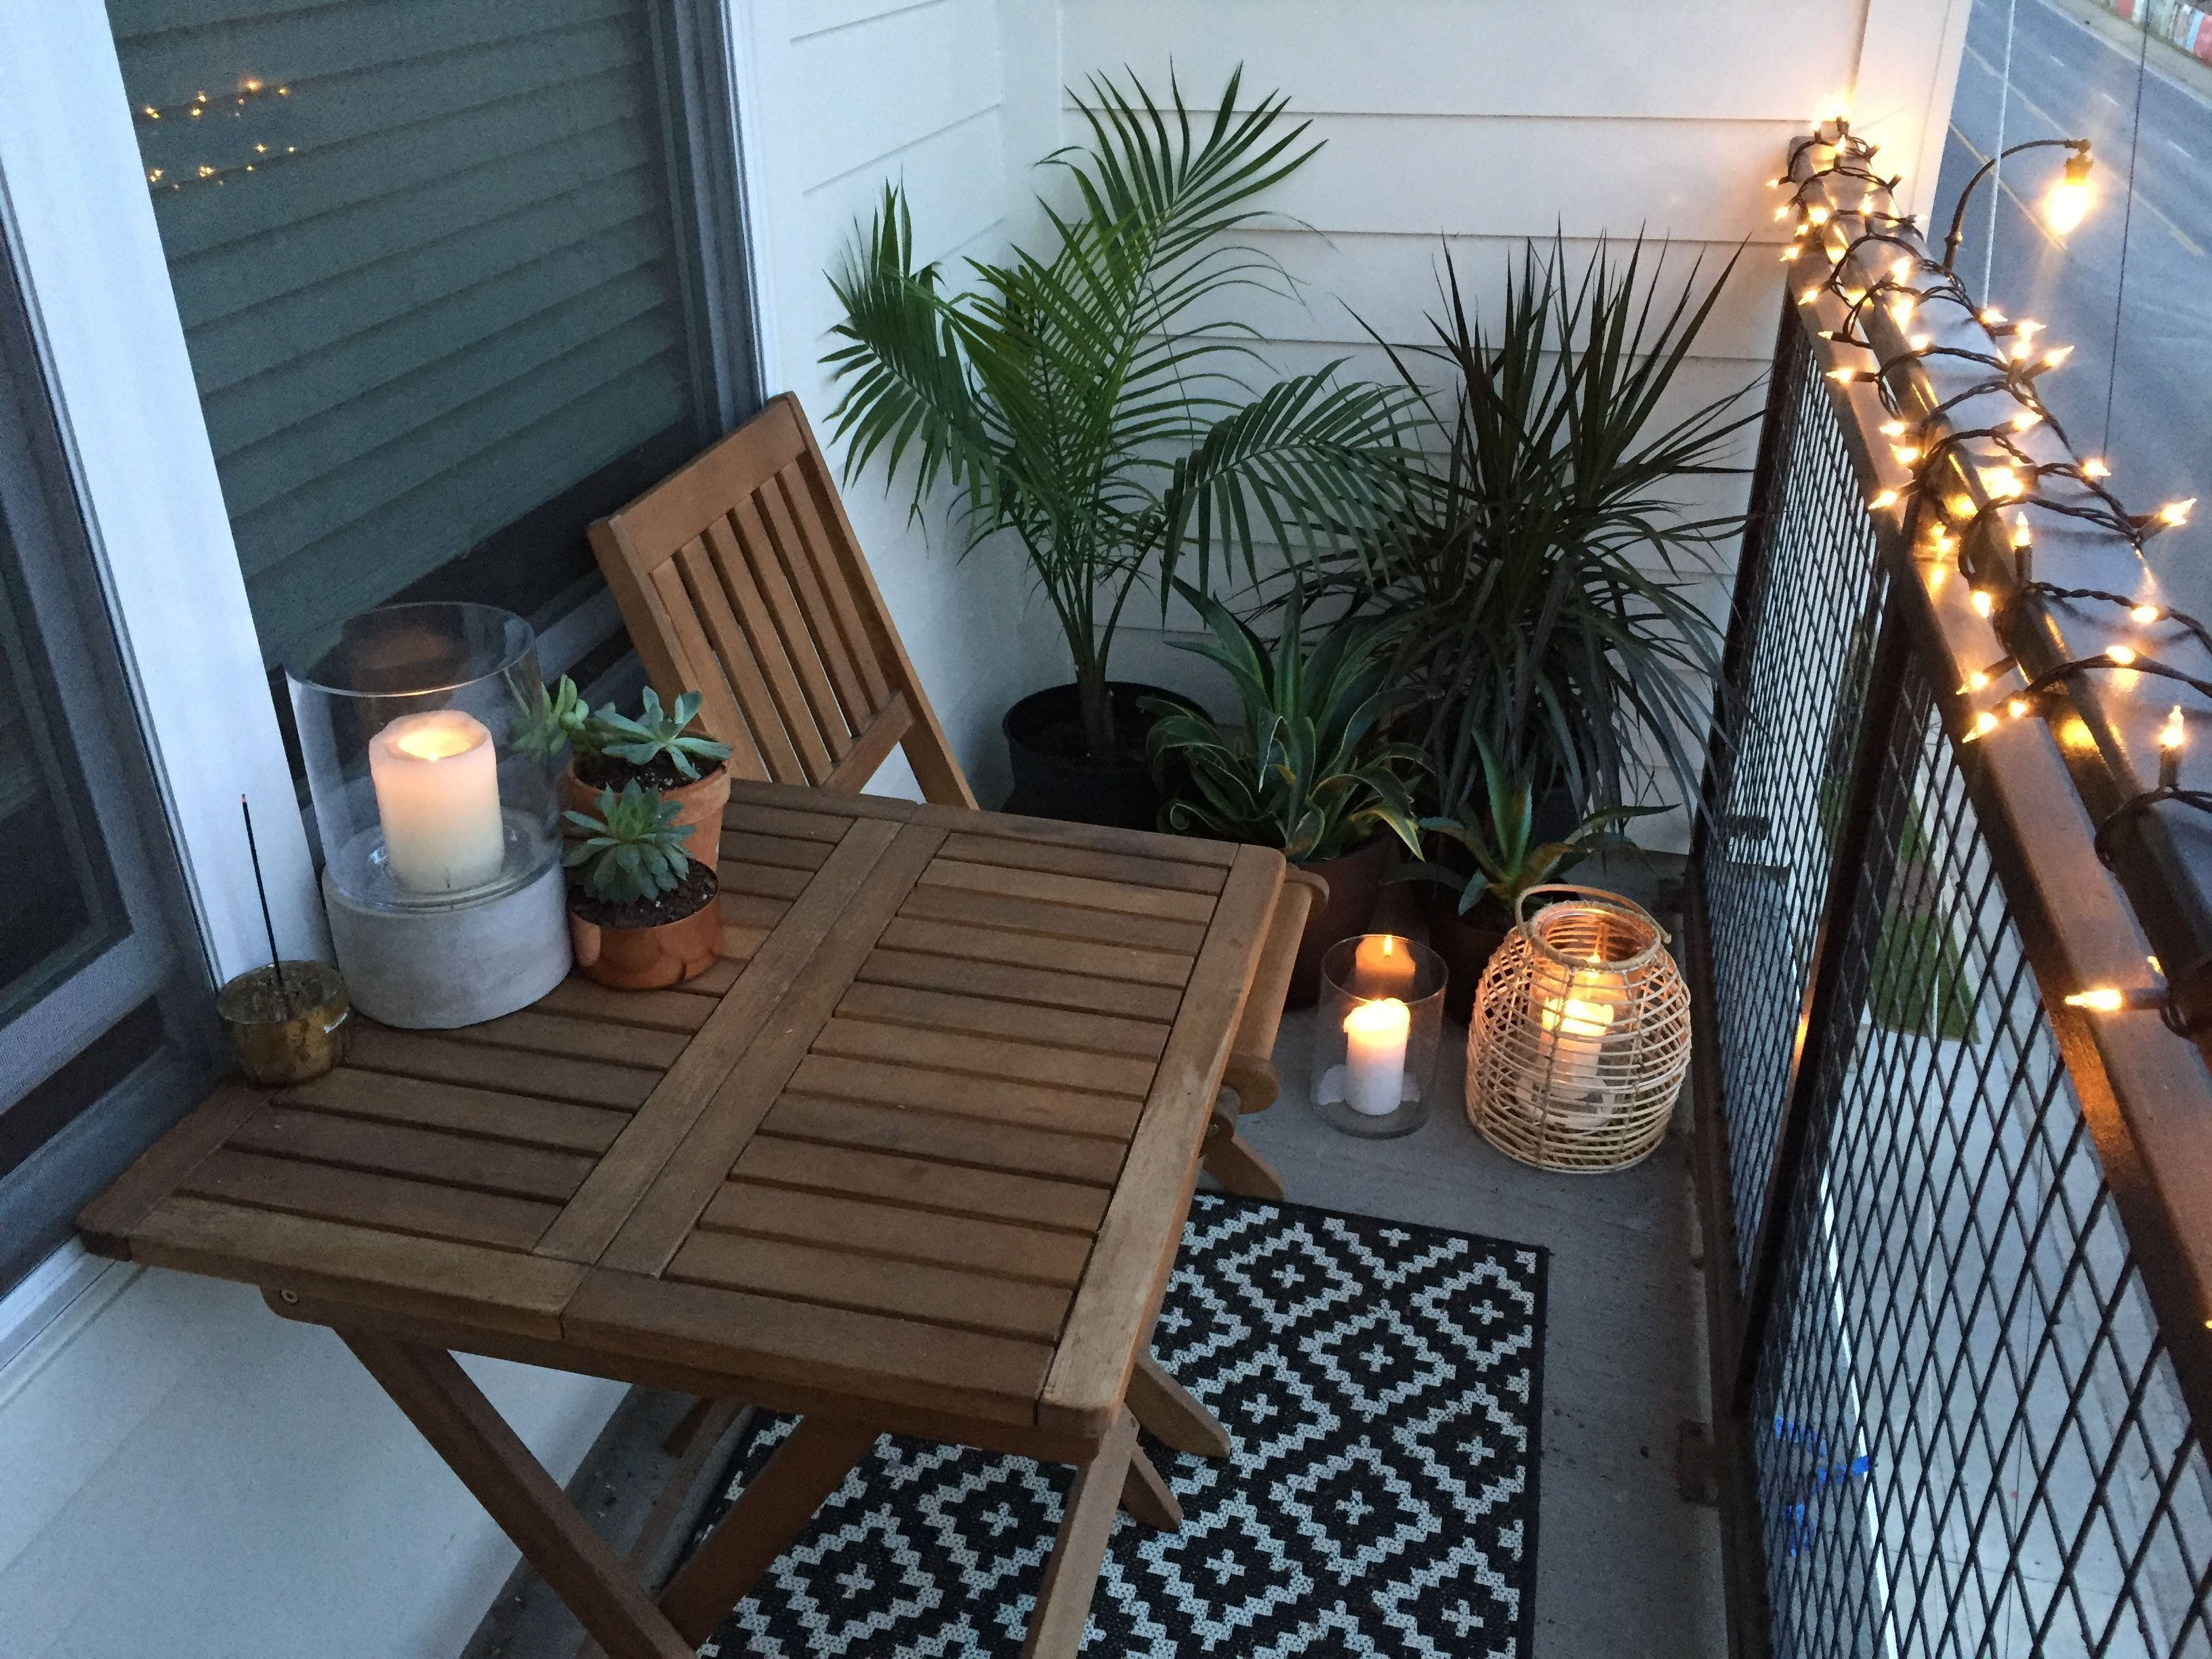 Apartment Small Balcony Decor Ideas And Design Balcony Garden With